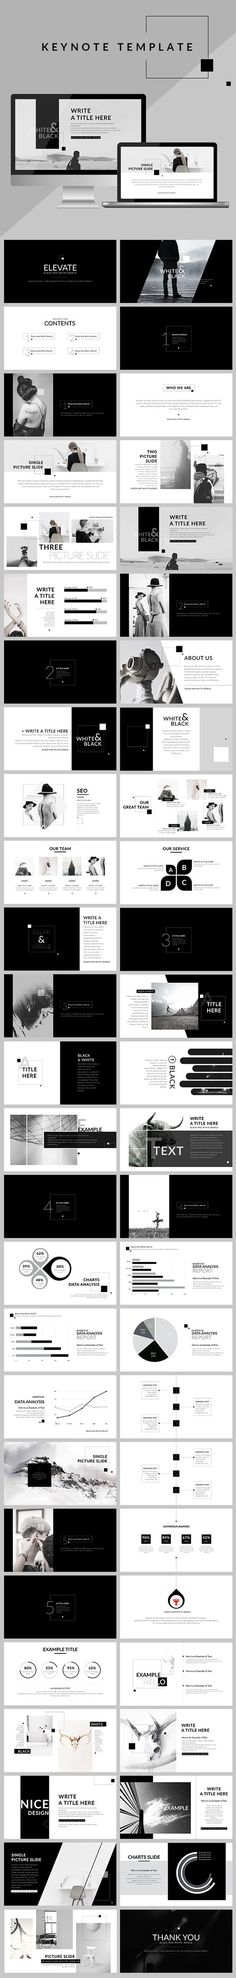 Black & White - Clean Keynote Template #minimal #marketing #best • Click here to download ! http://graphicriver.net/item/black-white-clean-keynote-template/16100964?ref=pxcr: